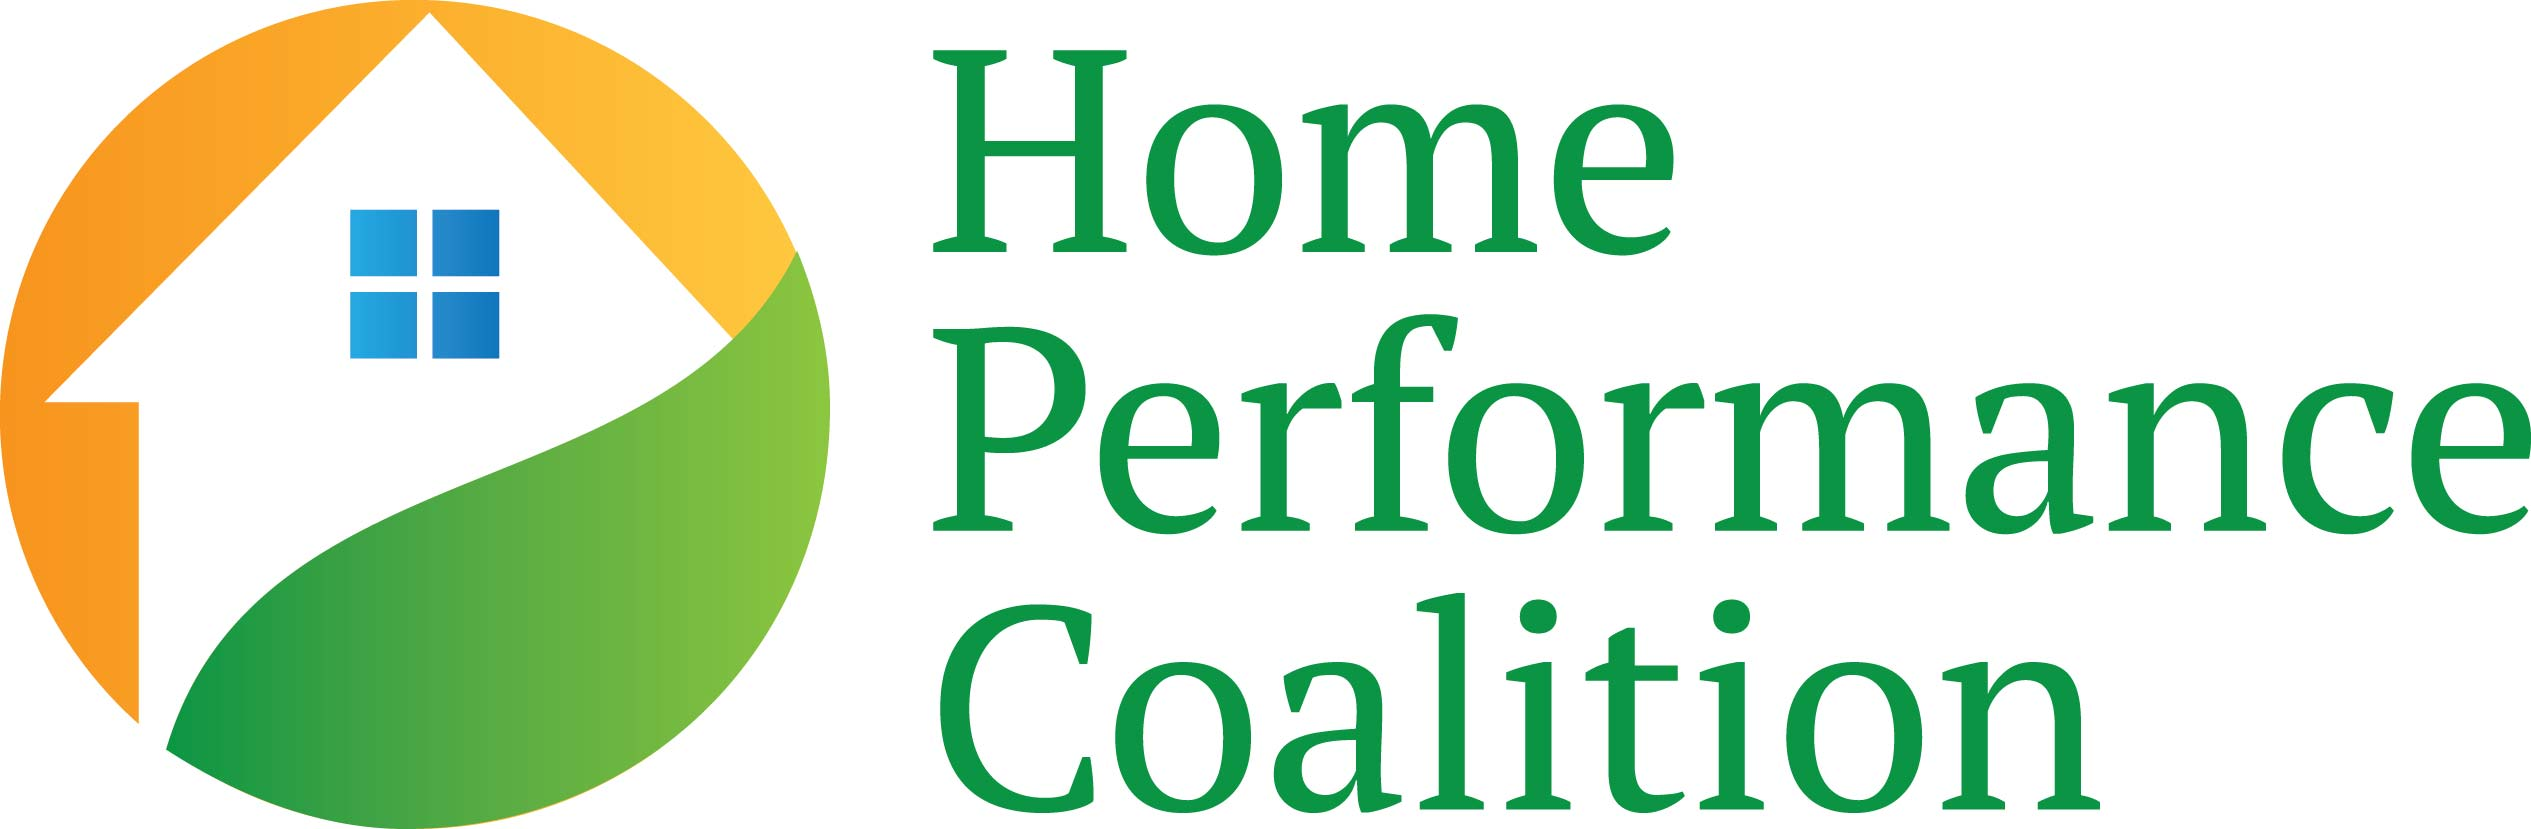 Home performance coalition launches brand identity for Performance house